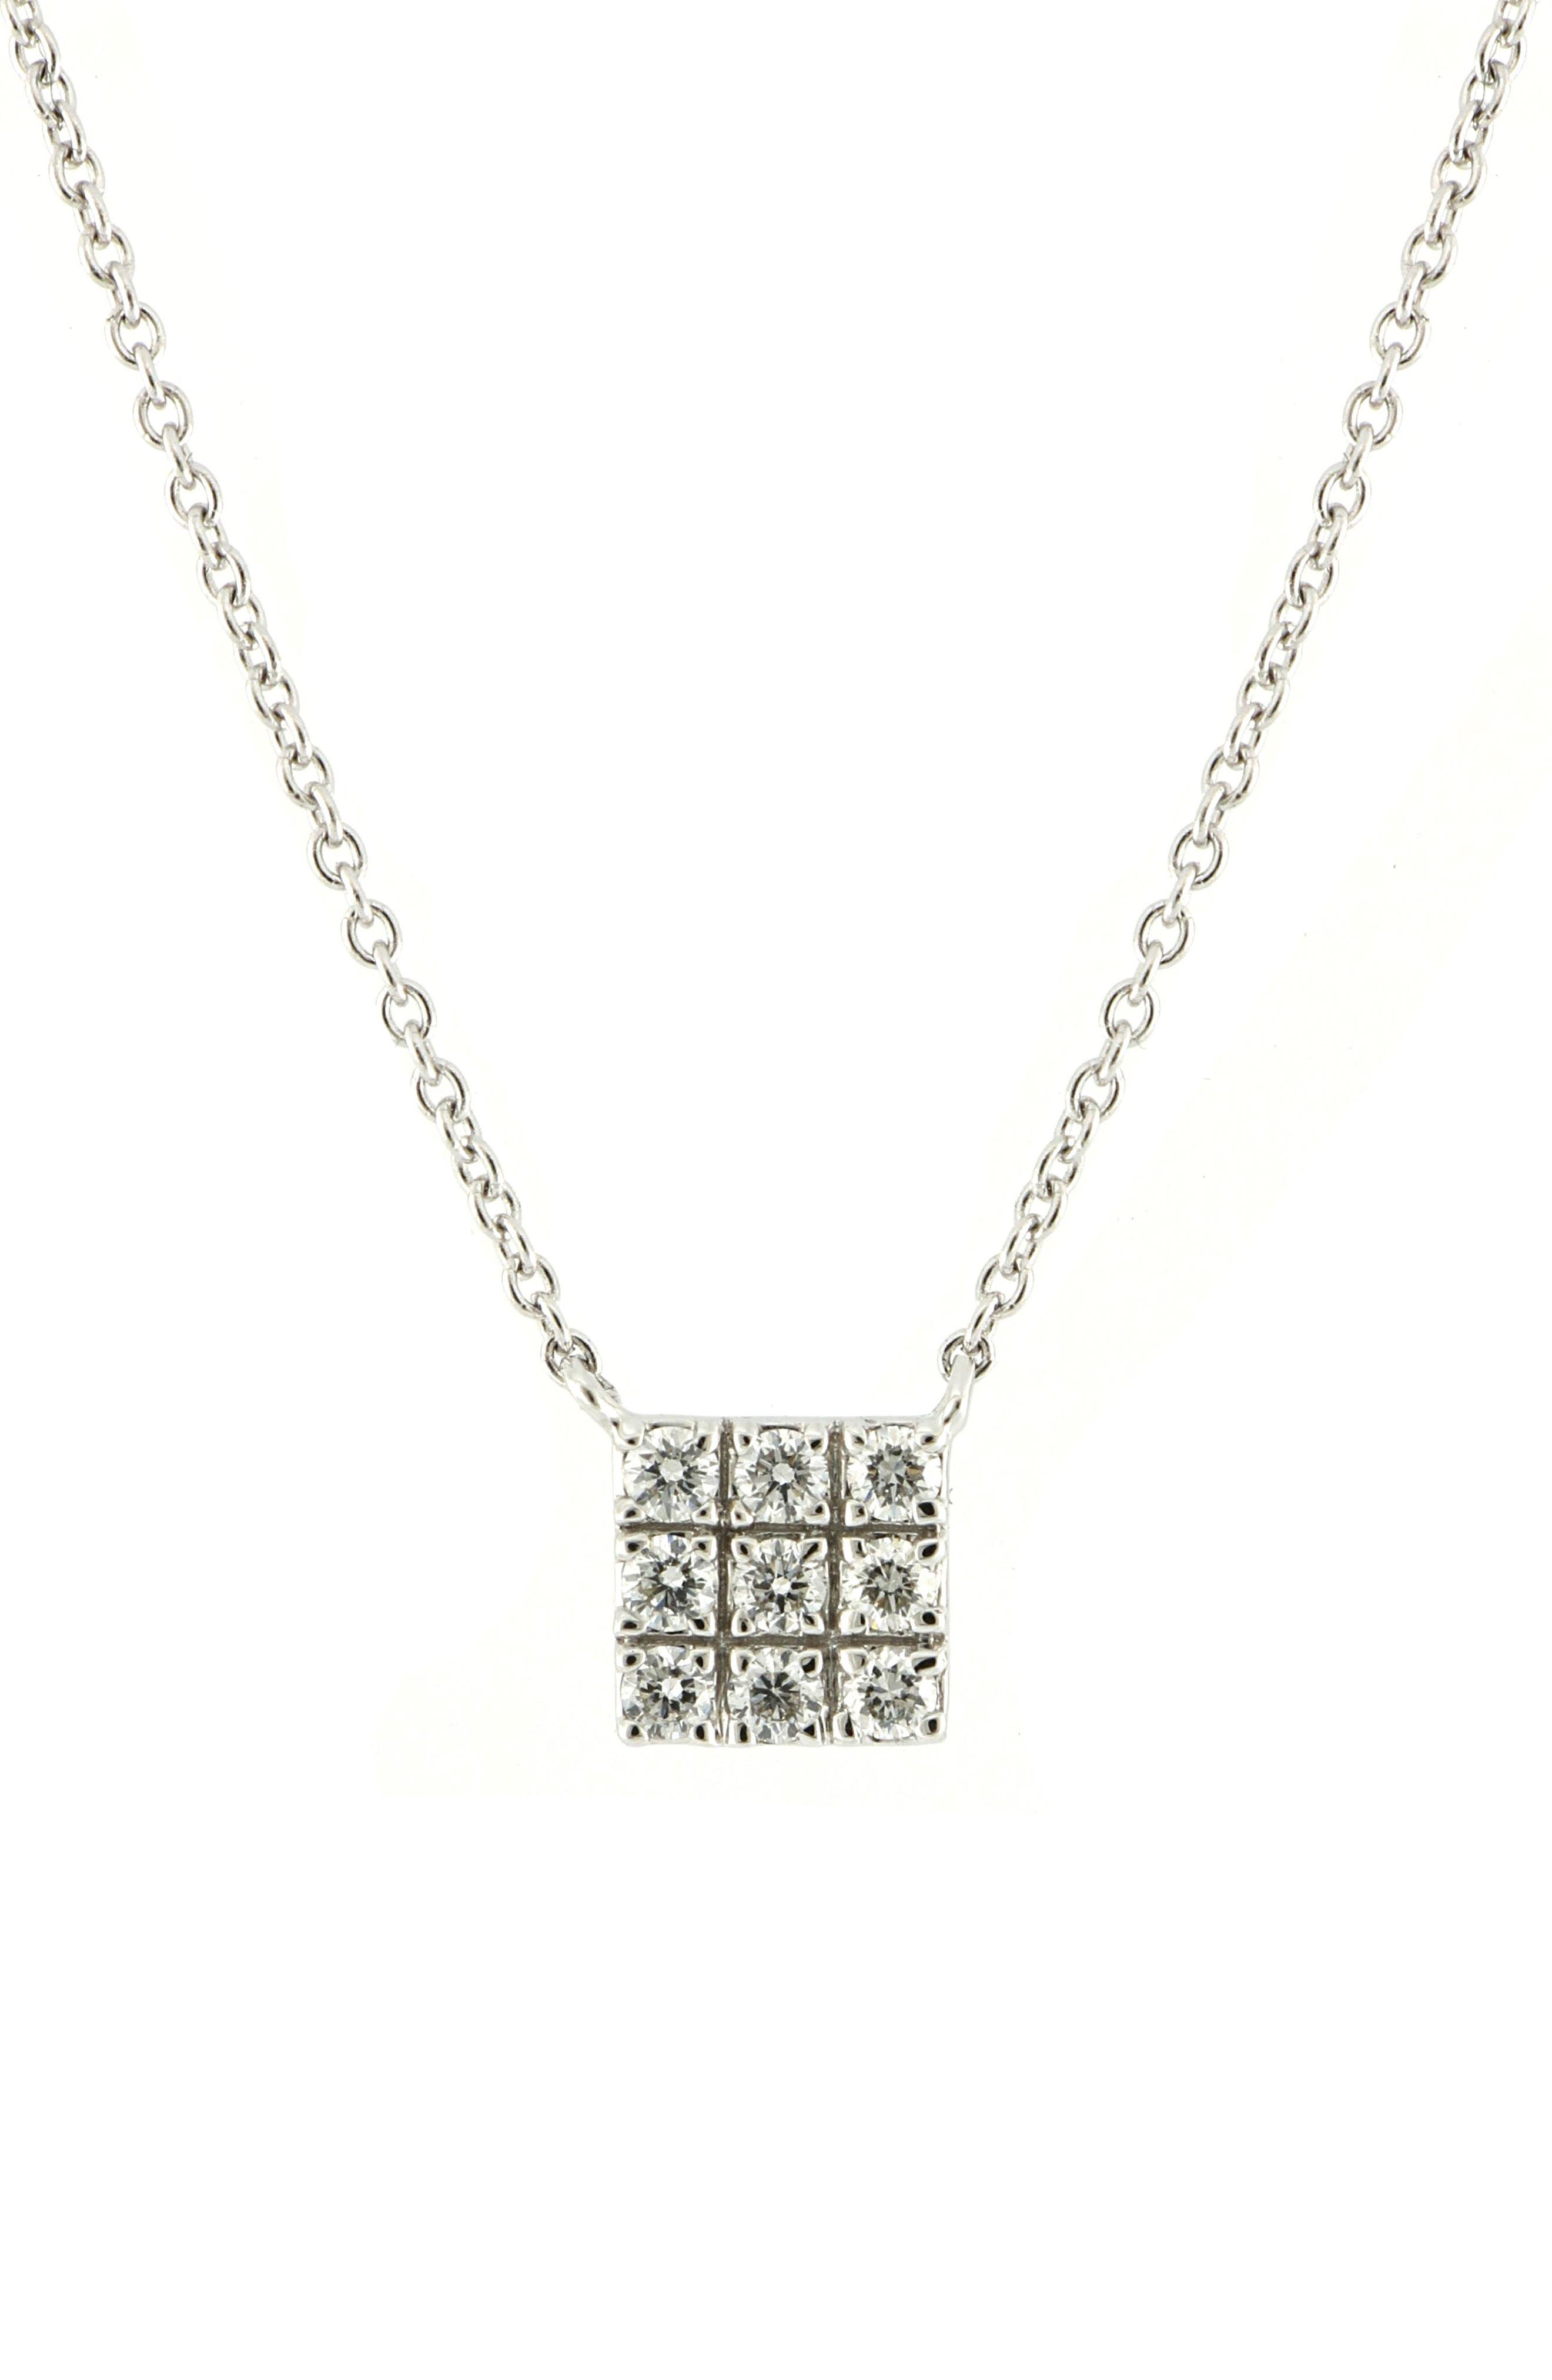 Kiera Square Pendant Necklace,                         Main,                         color, WHITE GOLD